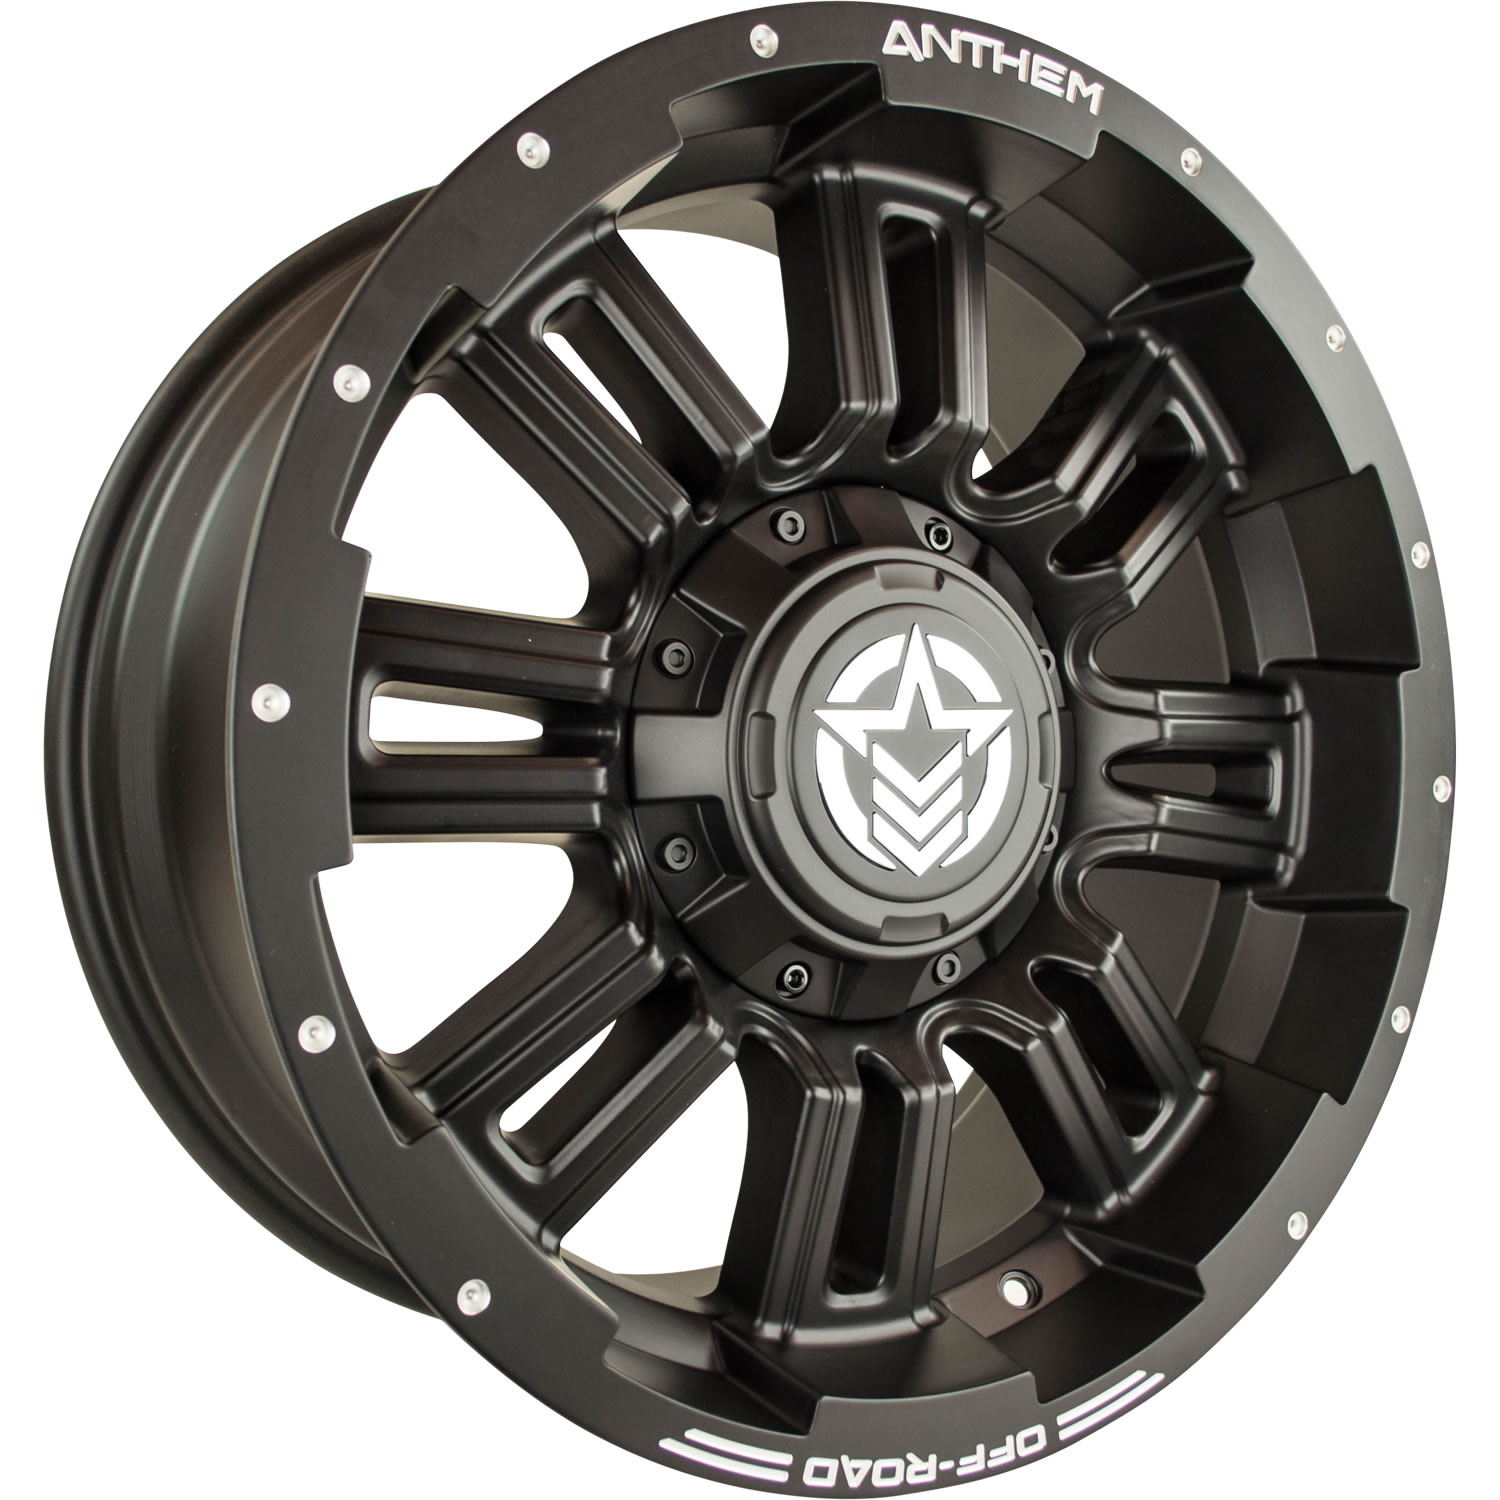 Anthem Enforcer 20x9 18